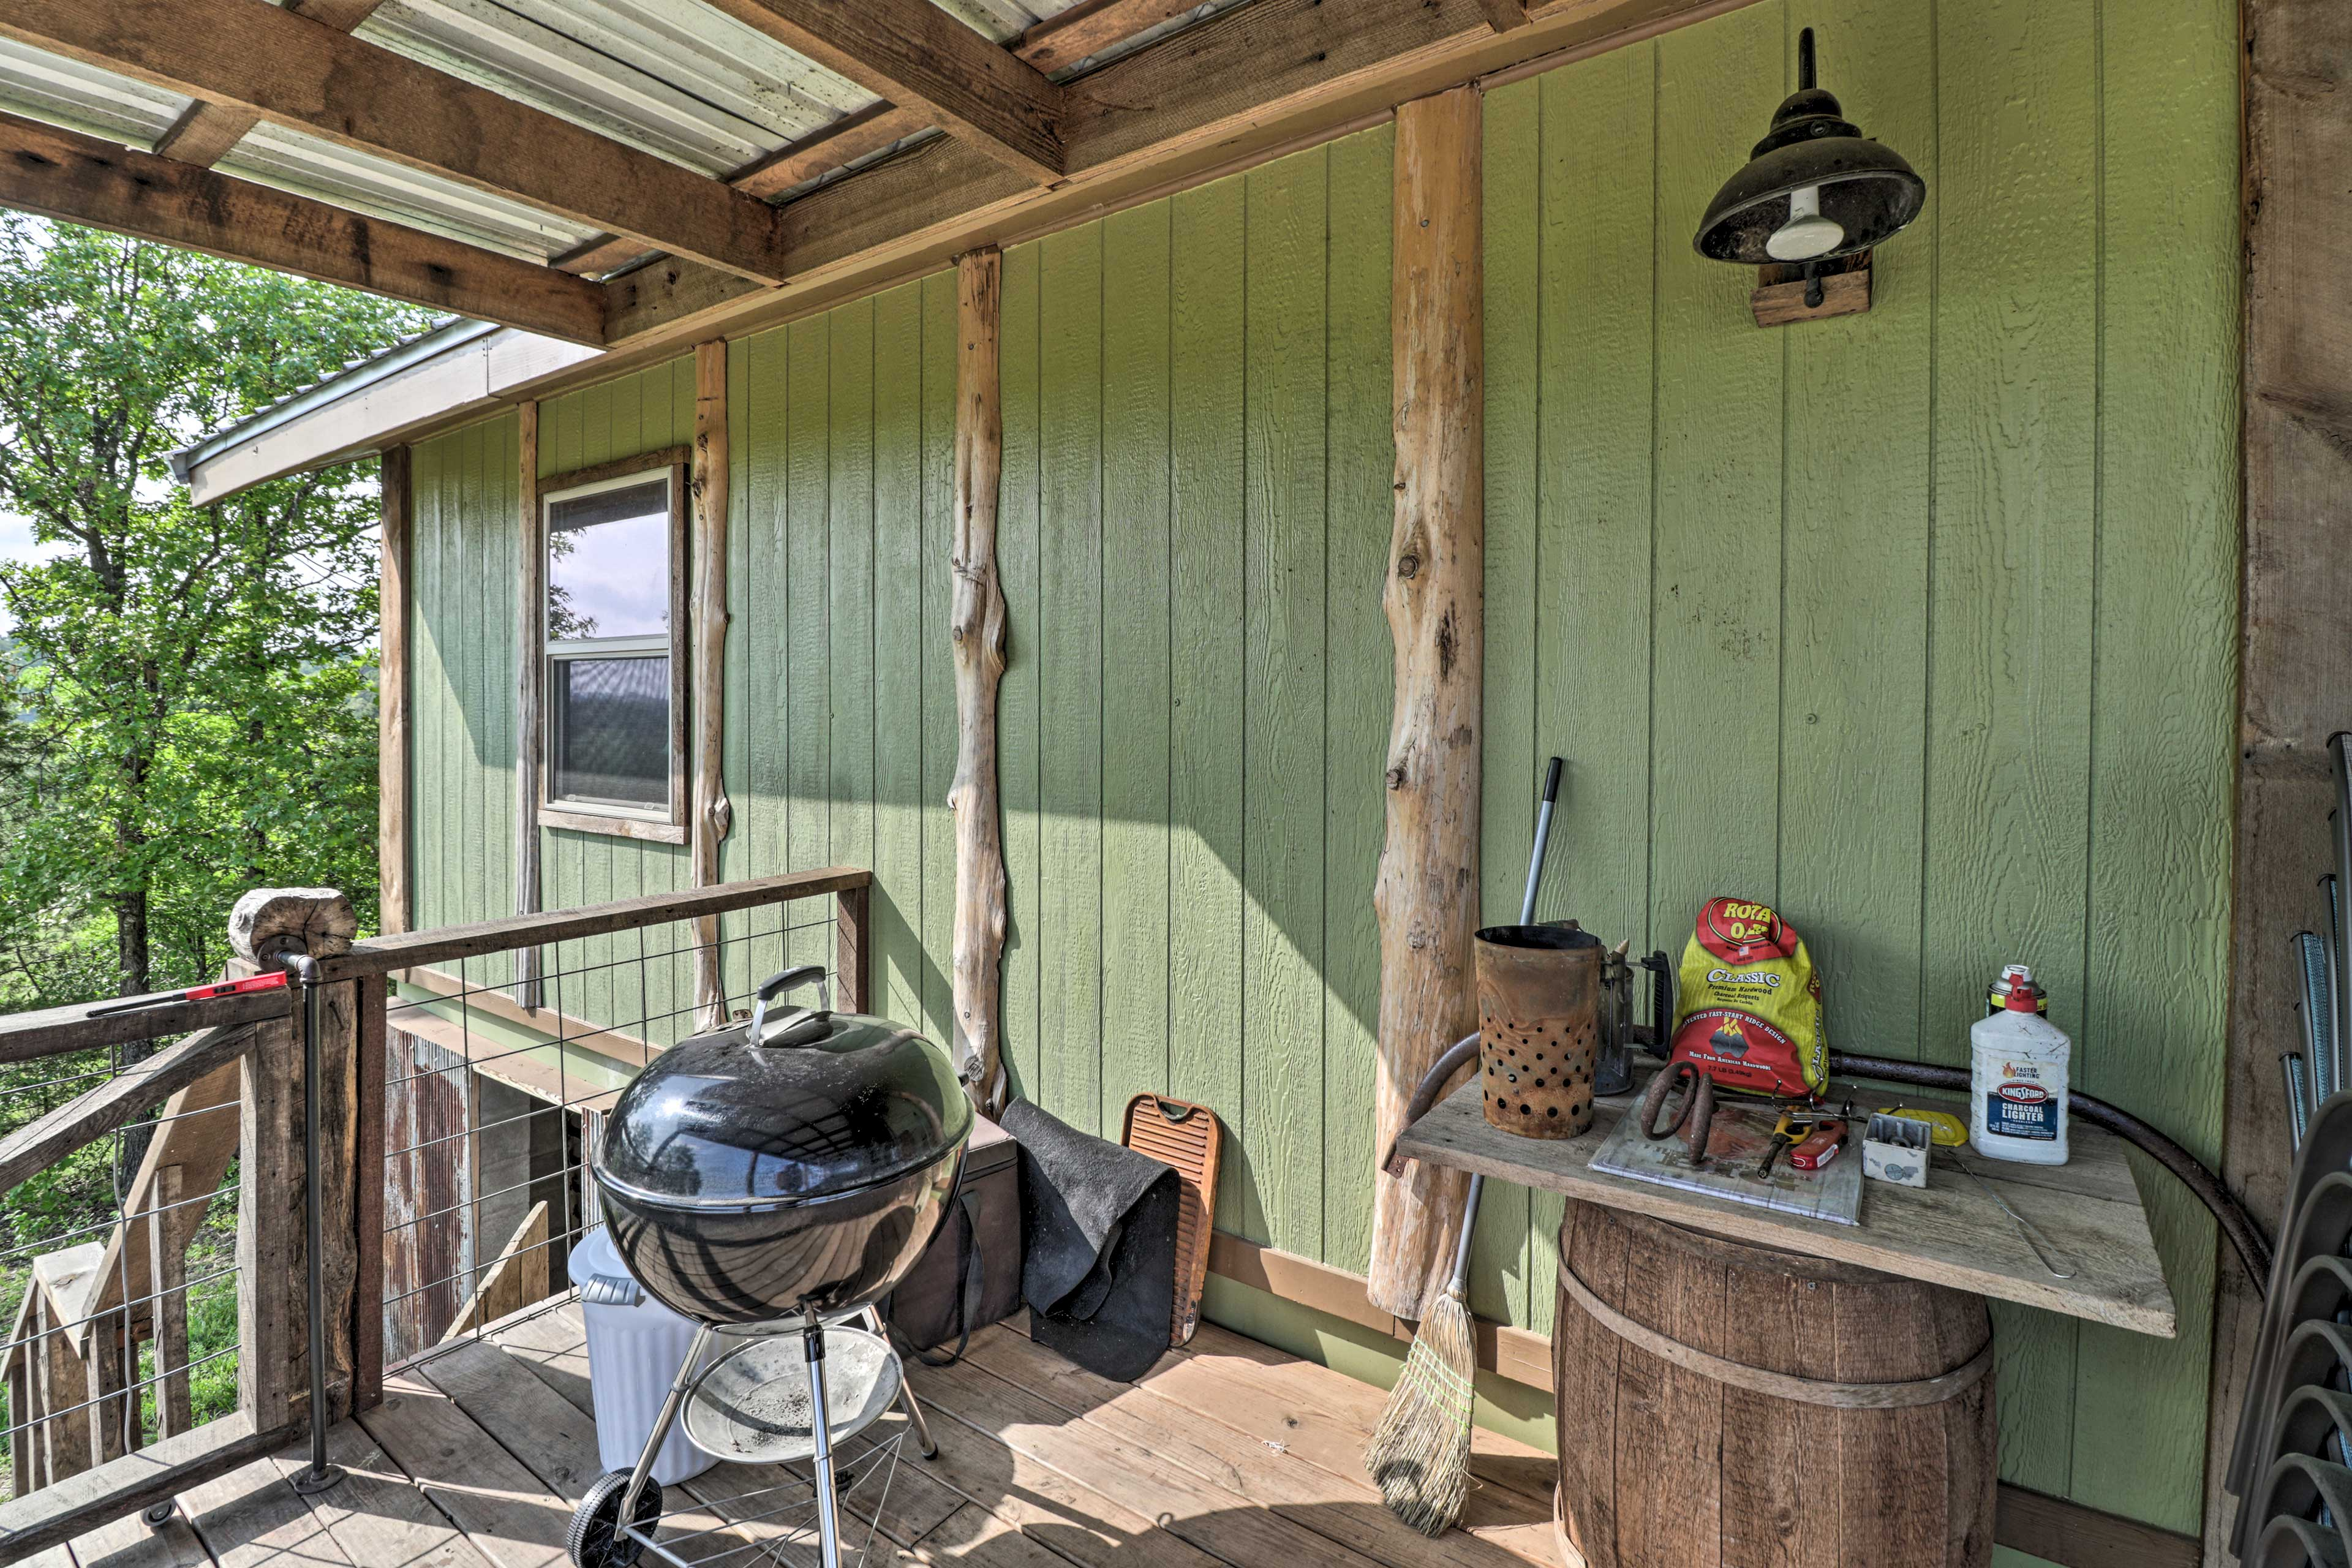 Covered Deck | Charcoal Grill